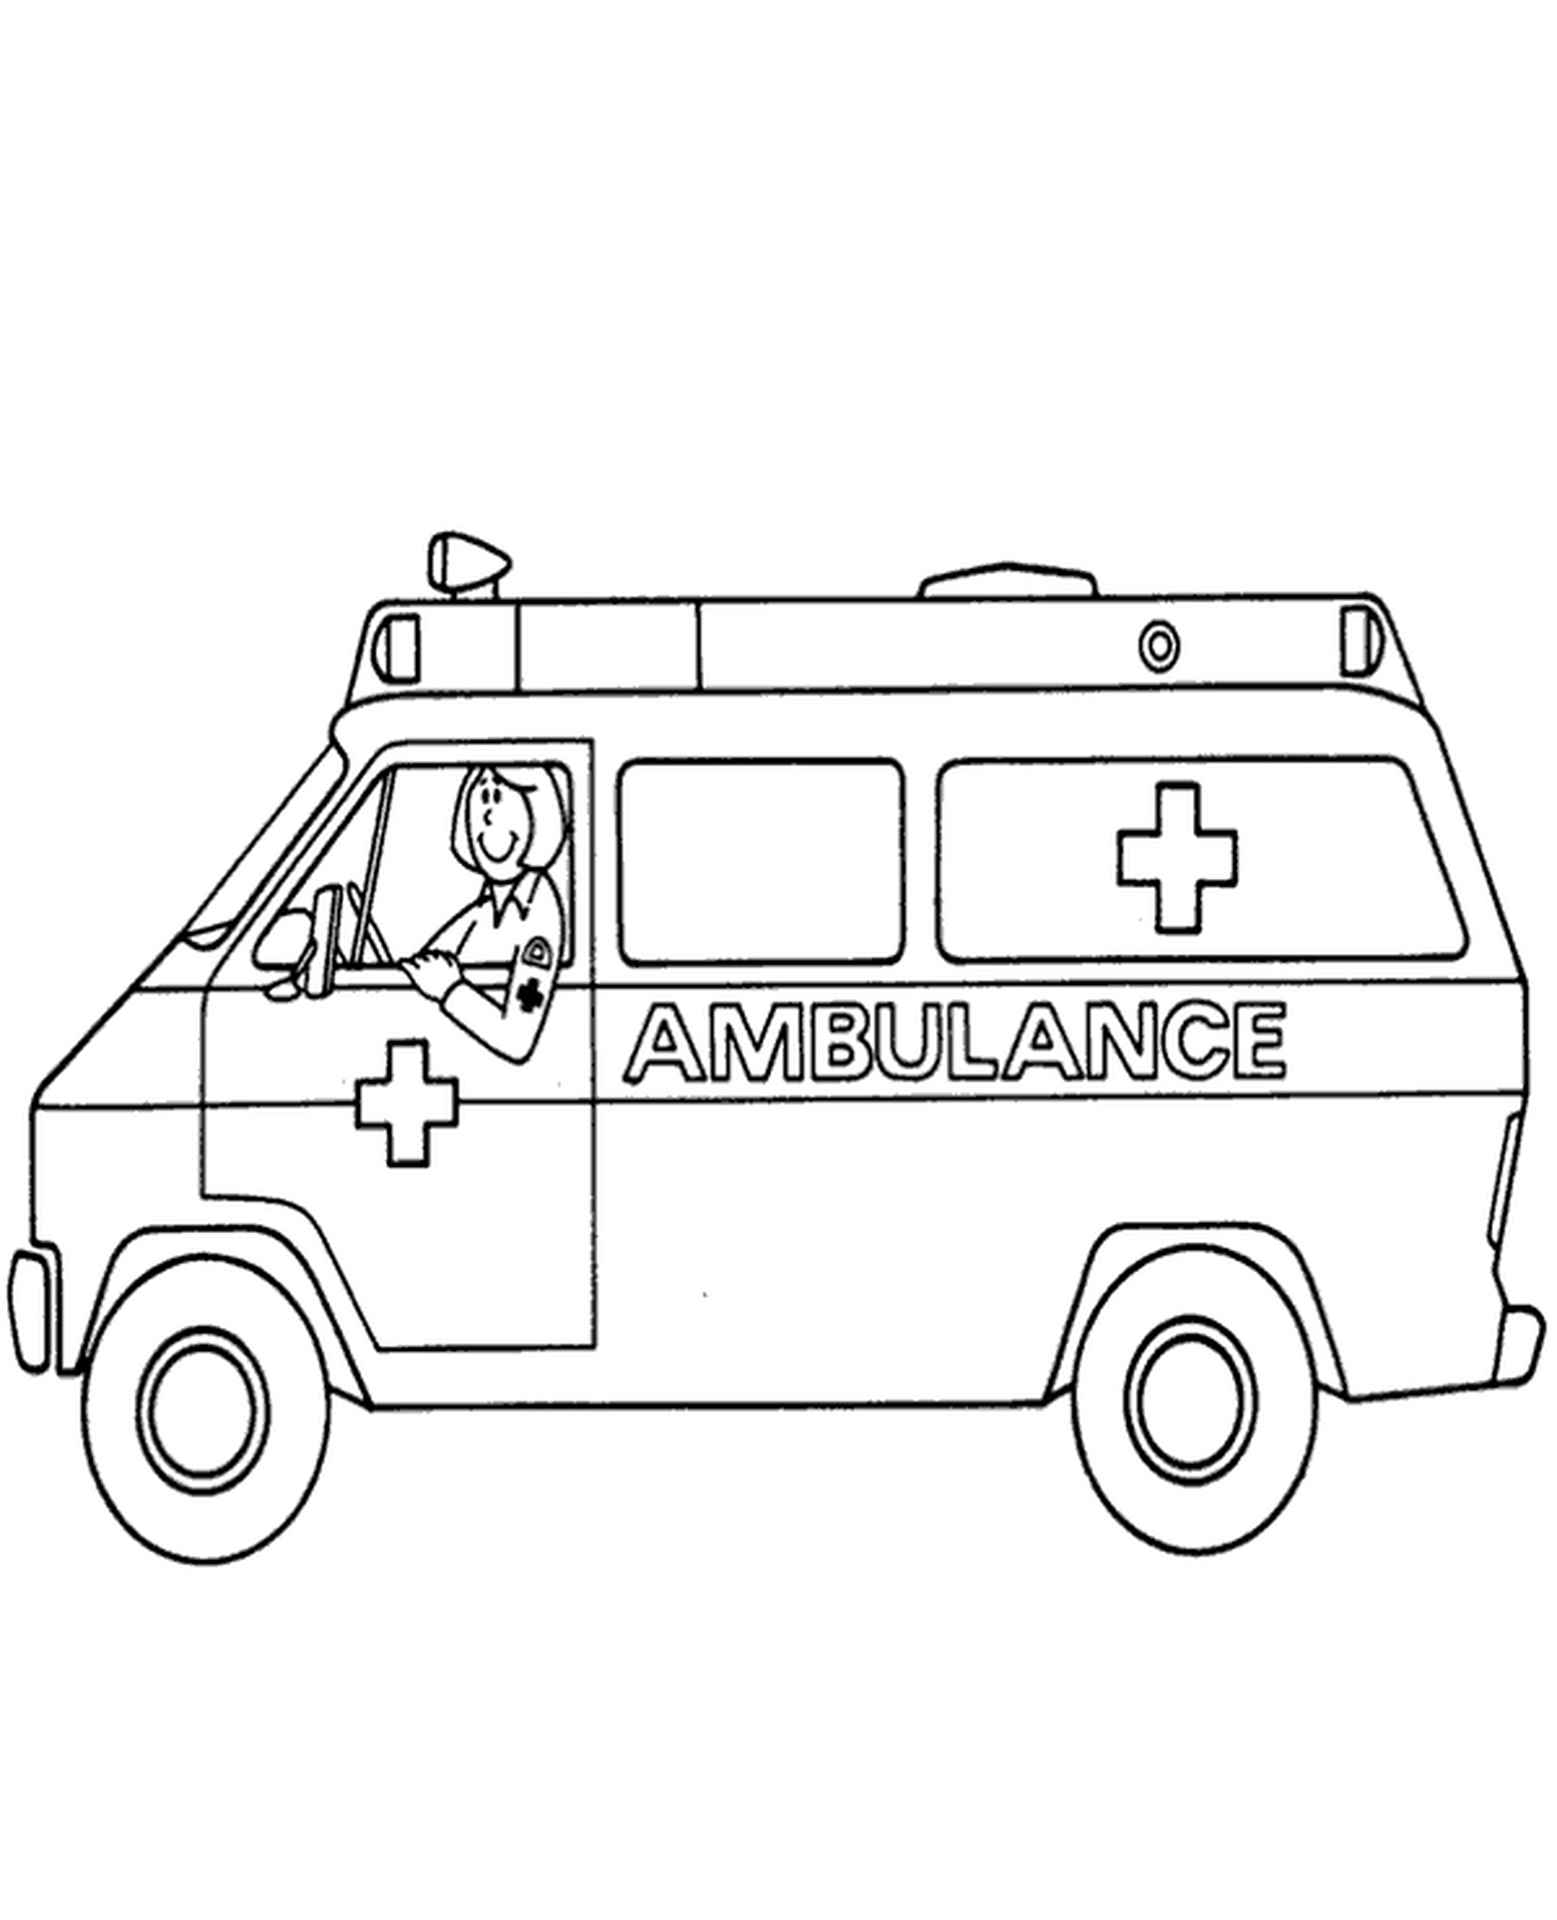 Ambulance With Driver Coloring Page